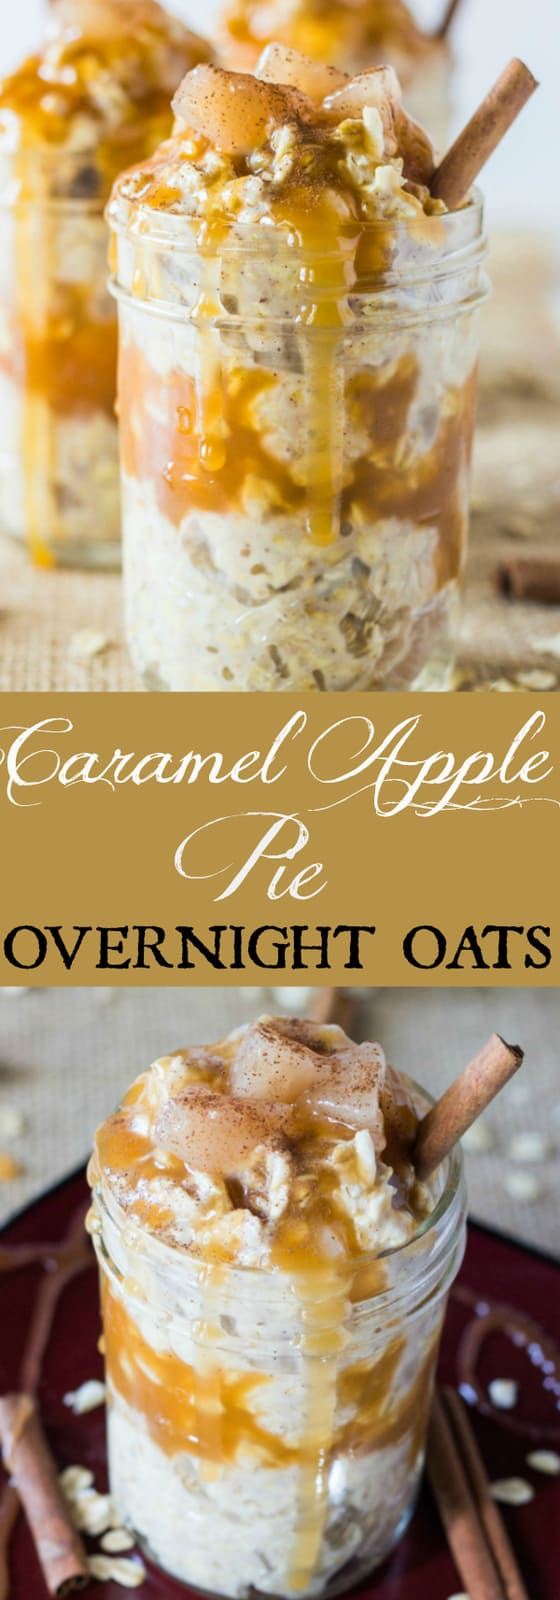 Caramel Apple Pie Overnight Oats